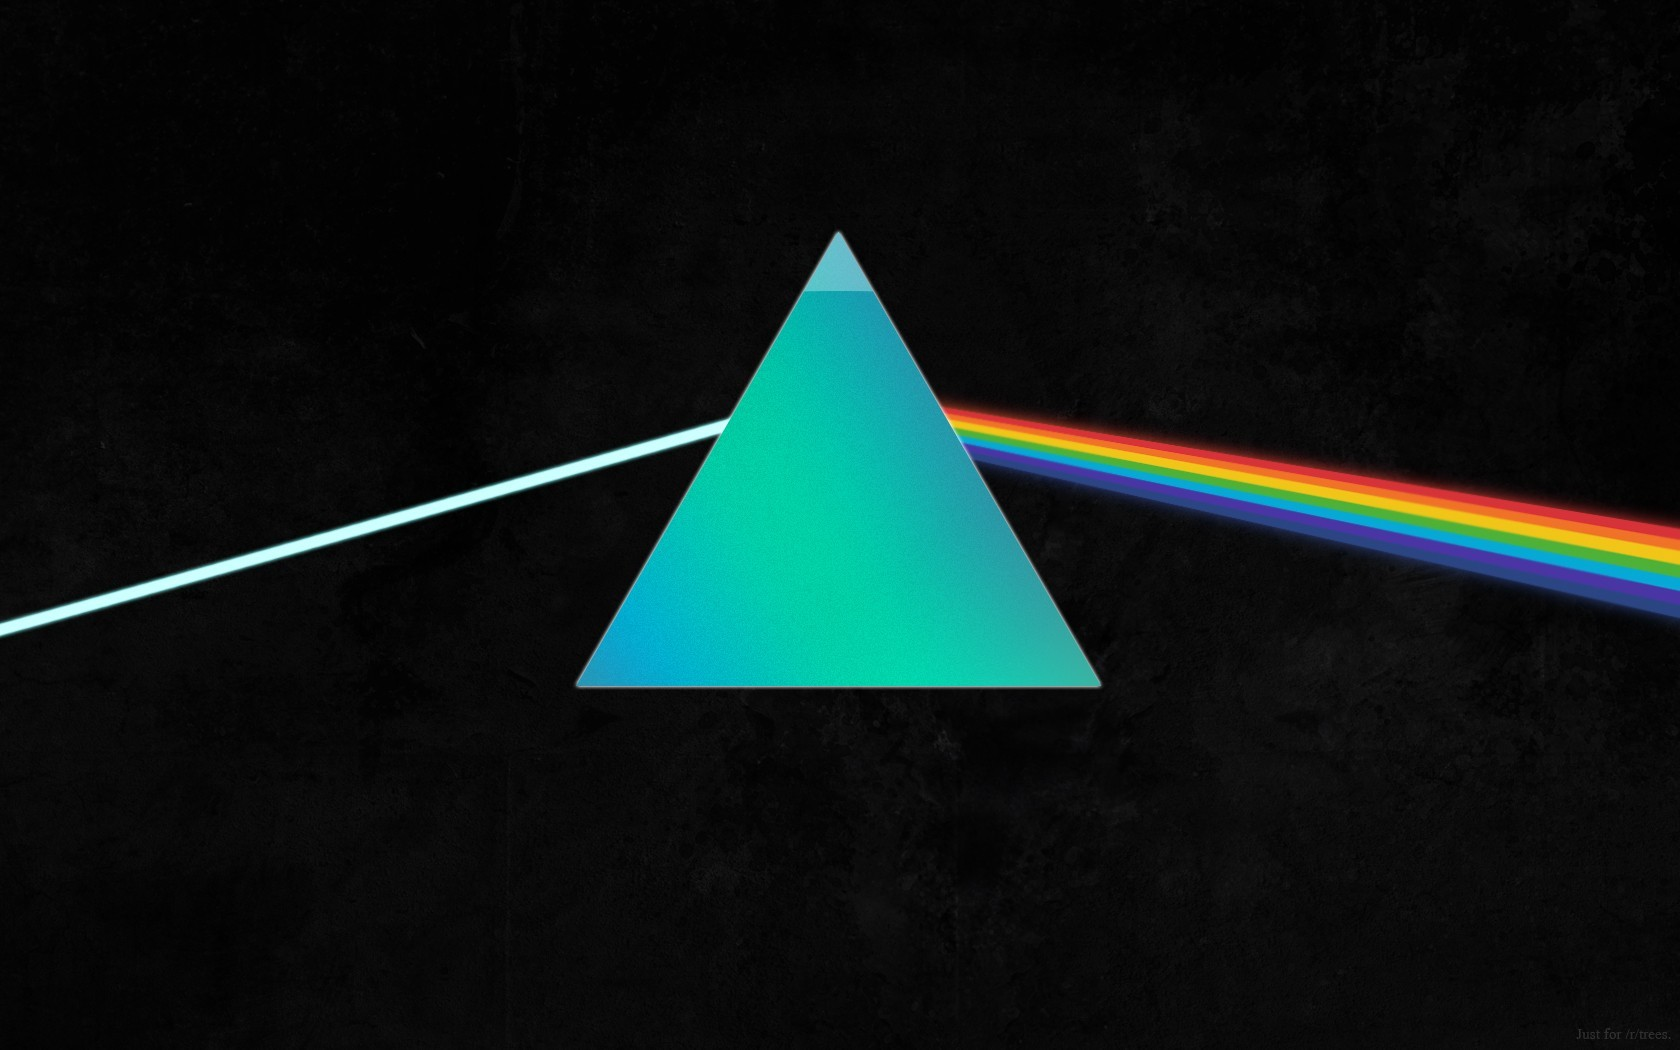 pink floyd The Dark HD Wallpaper